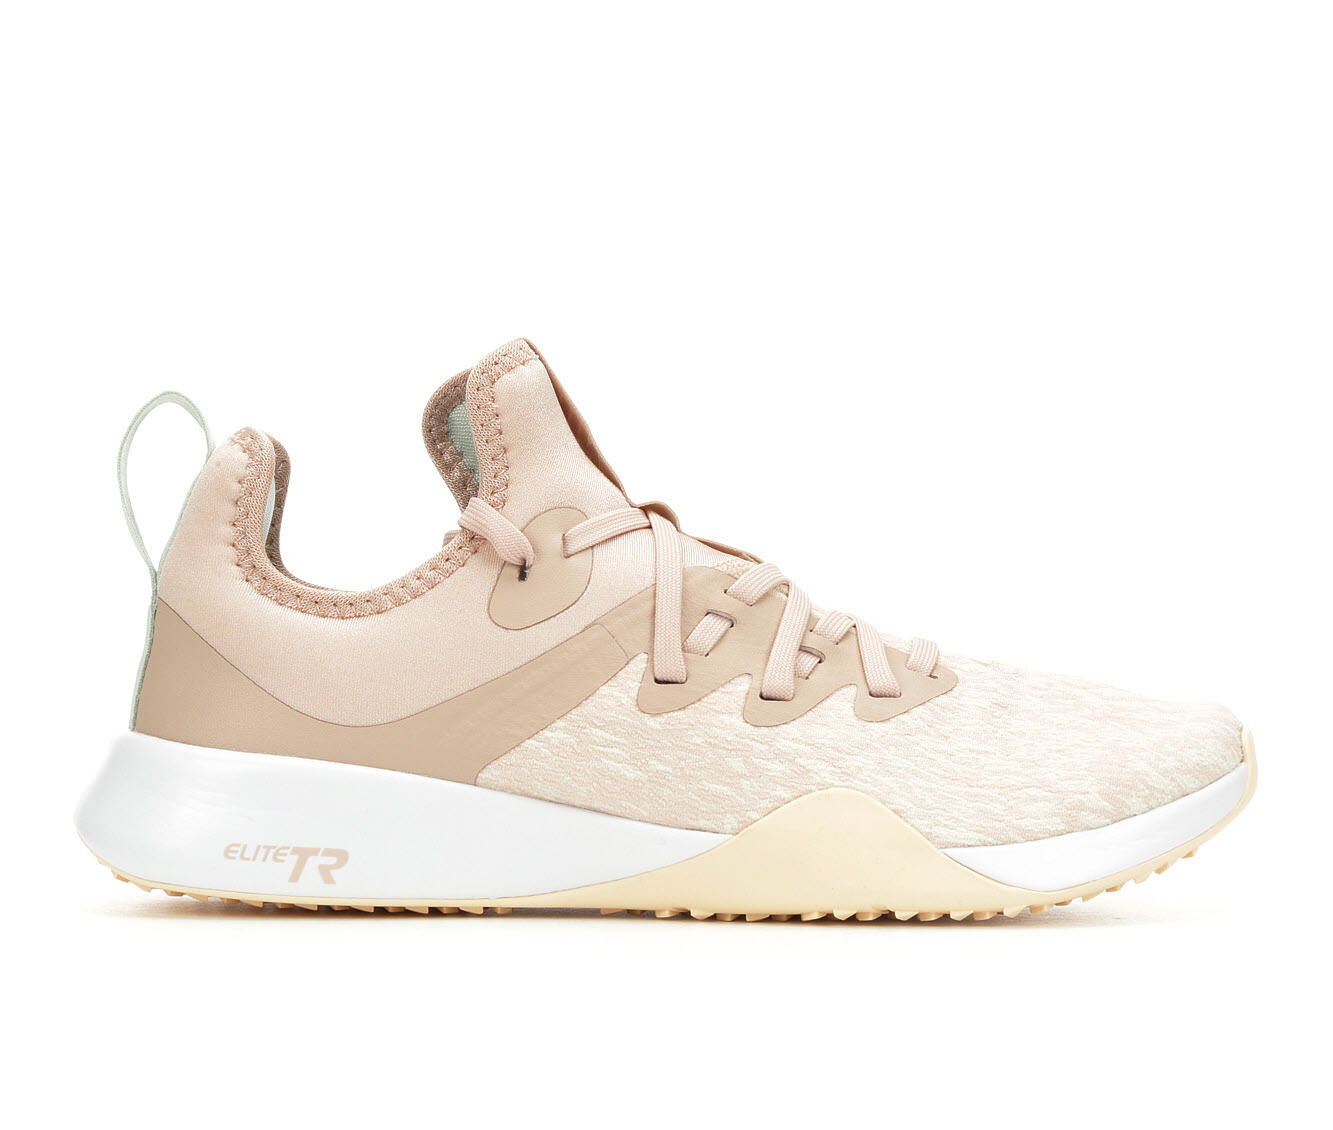 Women's Nike Foundation Elite TR Training Shoes Beige/Guava/Sil